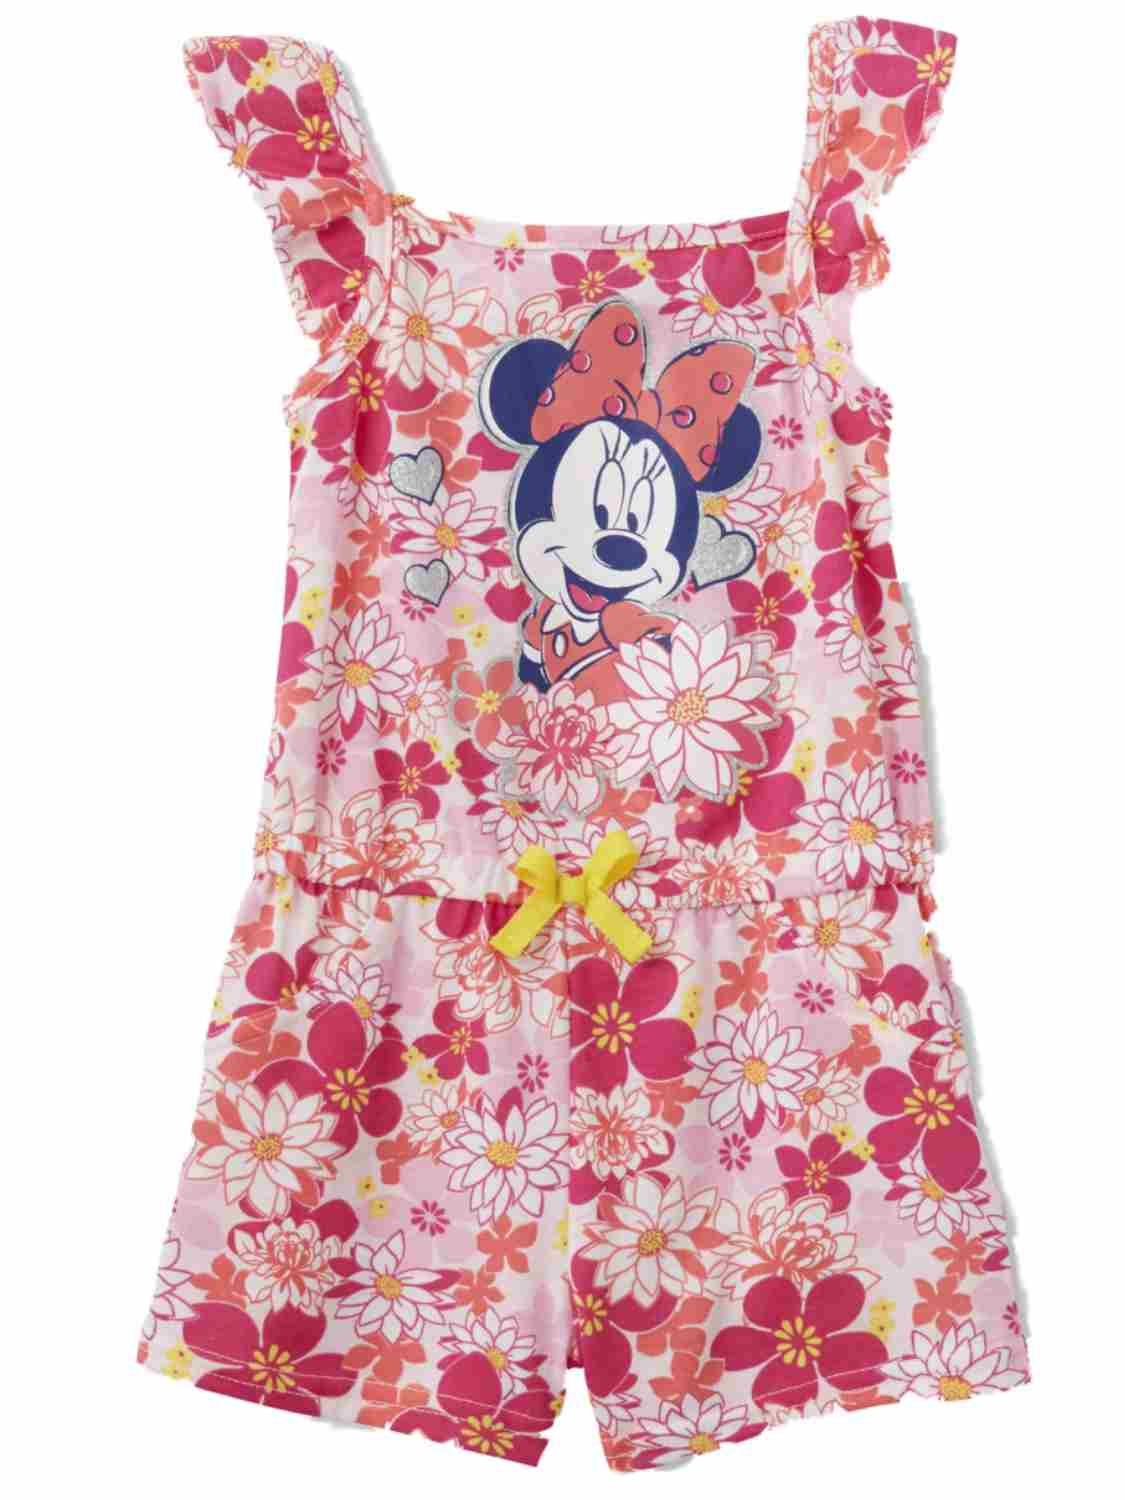 Disney Infant & Toddler Girls Pink Floral Minnie Mouse Romper Baby Outfit